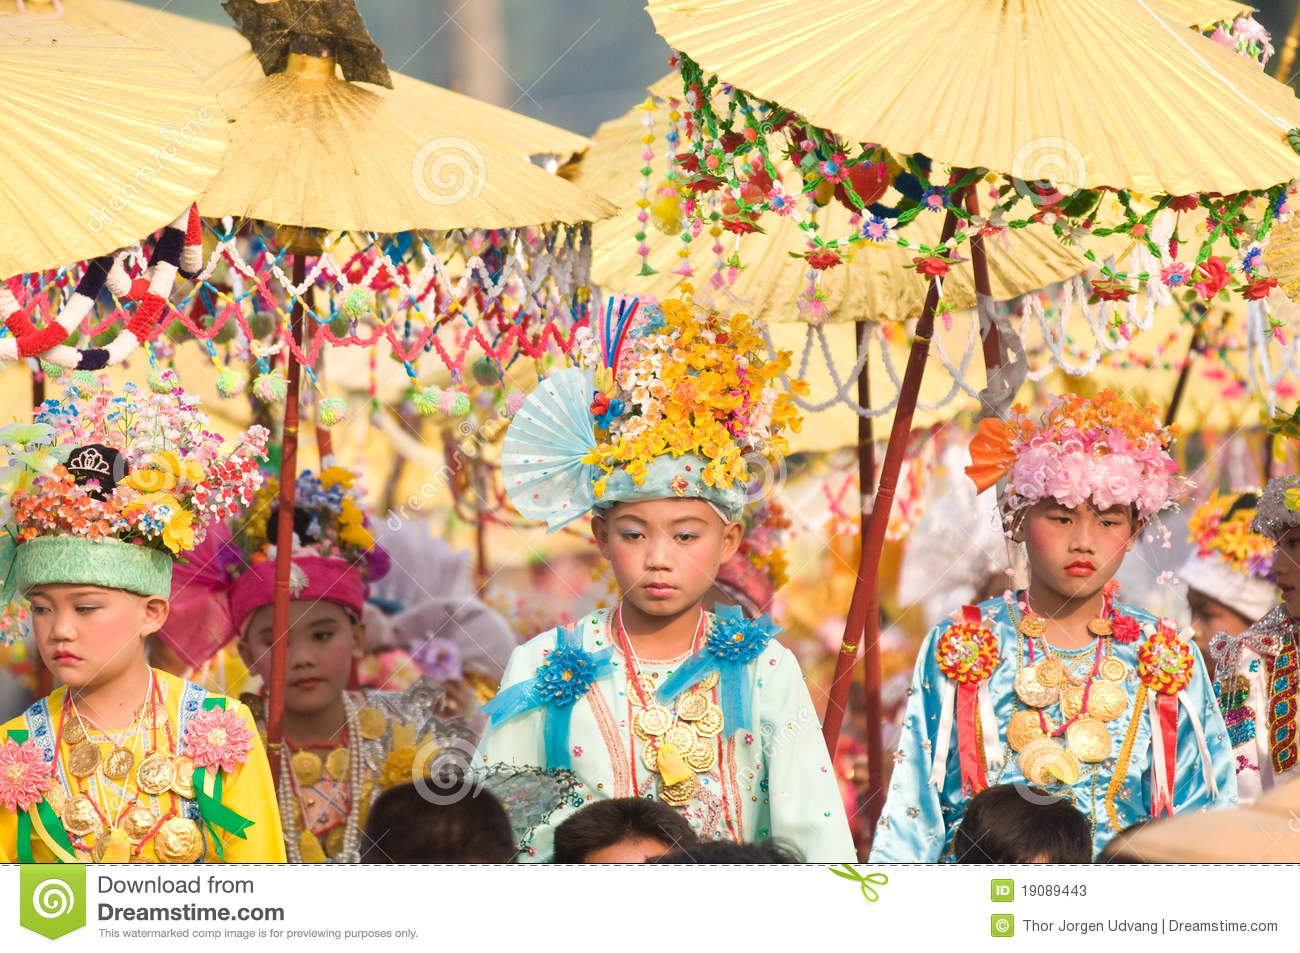 Poy Sang Long Ceremony in Mae Hong Son, Thailand